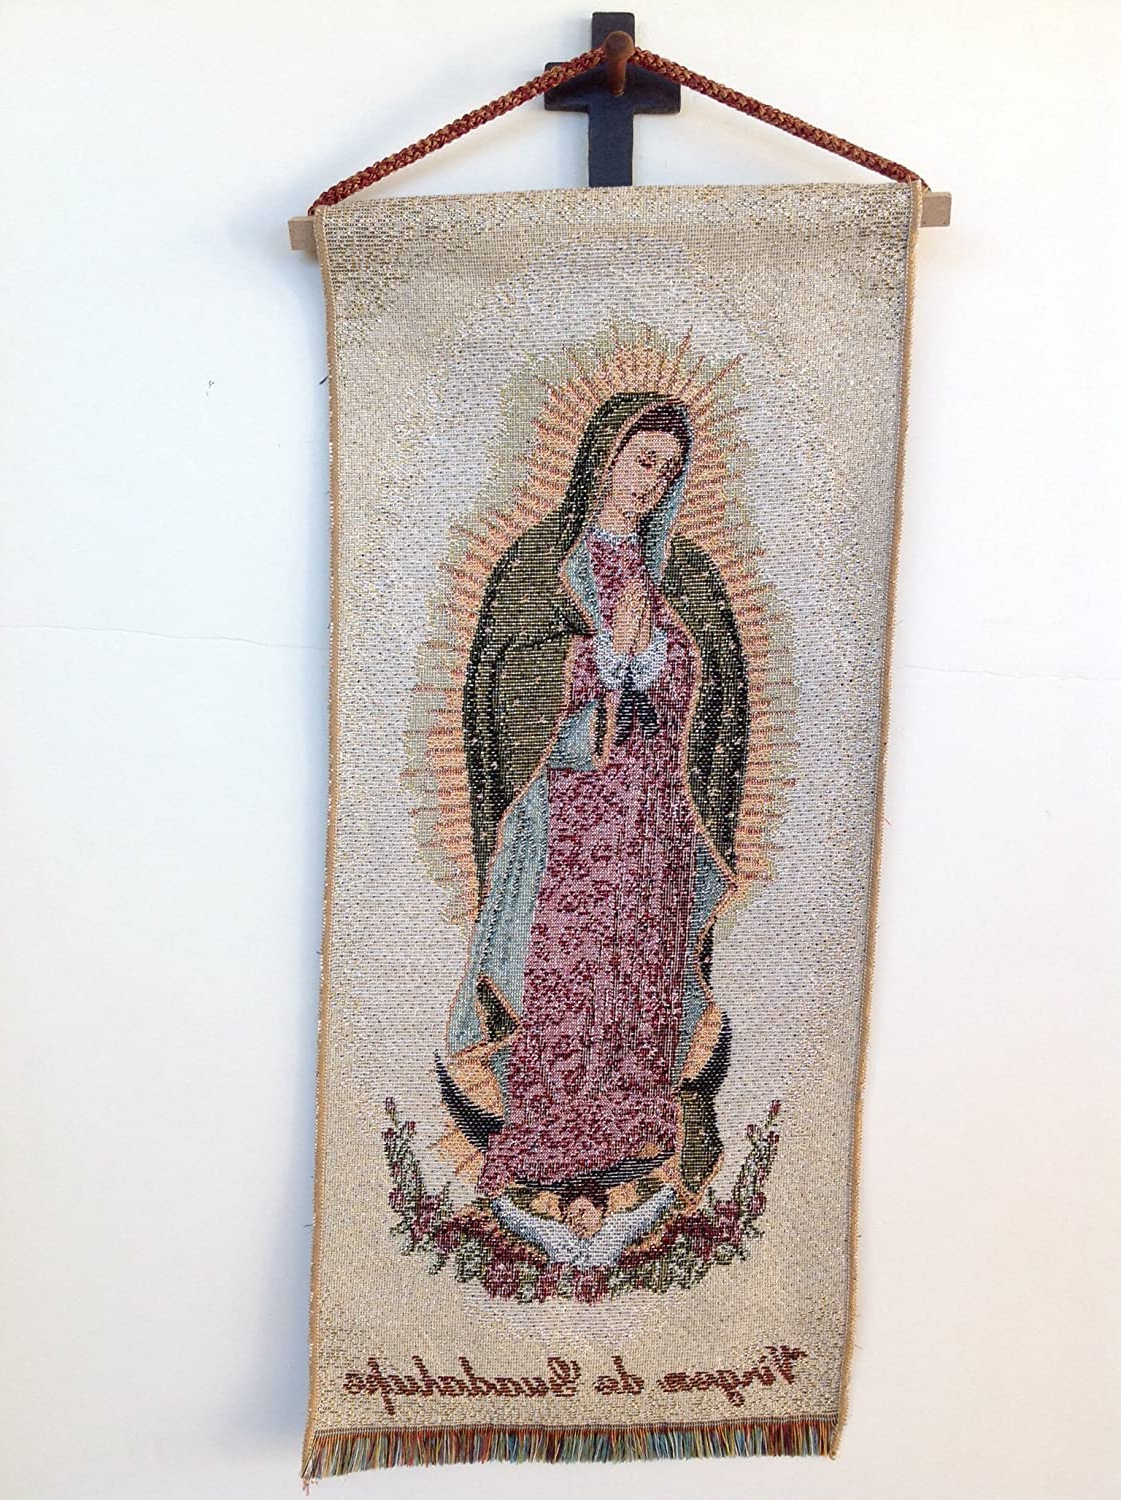 Amazon: Our Lady Of Guadalupe Wall Hanging Tapestry Throughout Recent Blended Fabric Our Lady Of Guadalupe Wall Hangings (View 2 of 20)